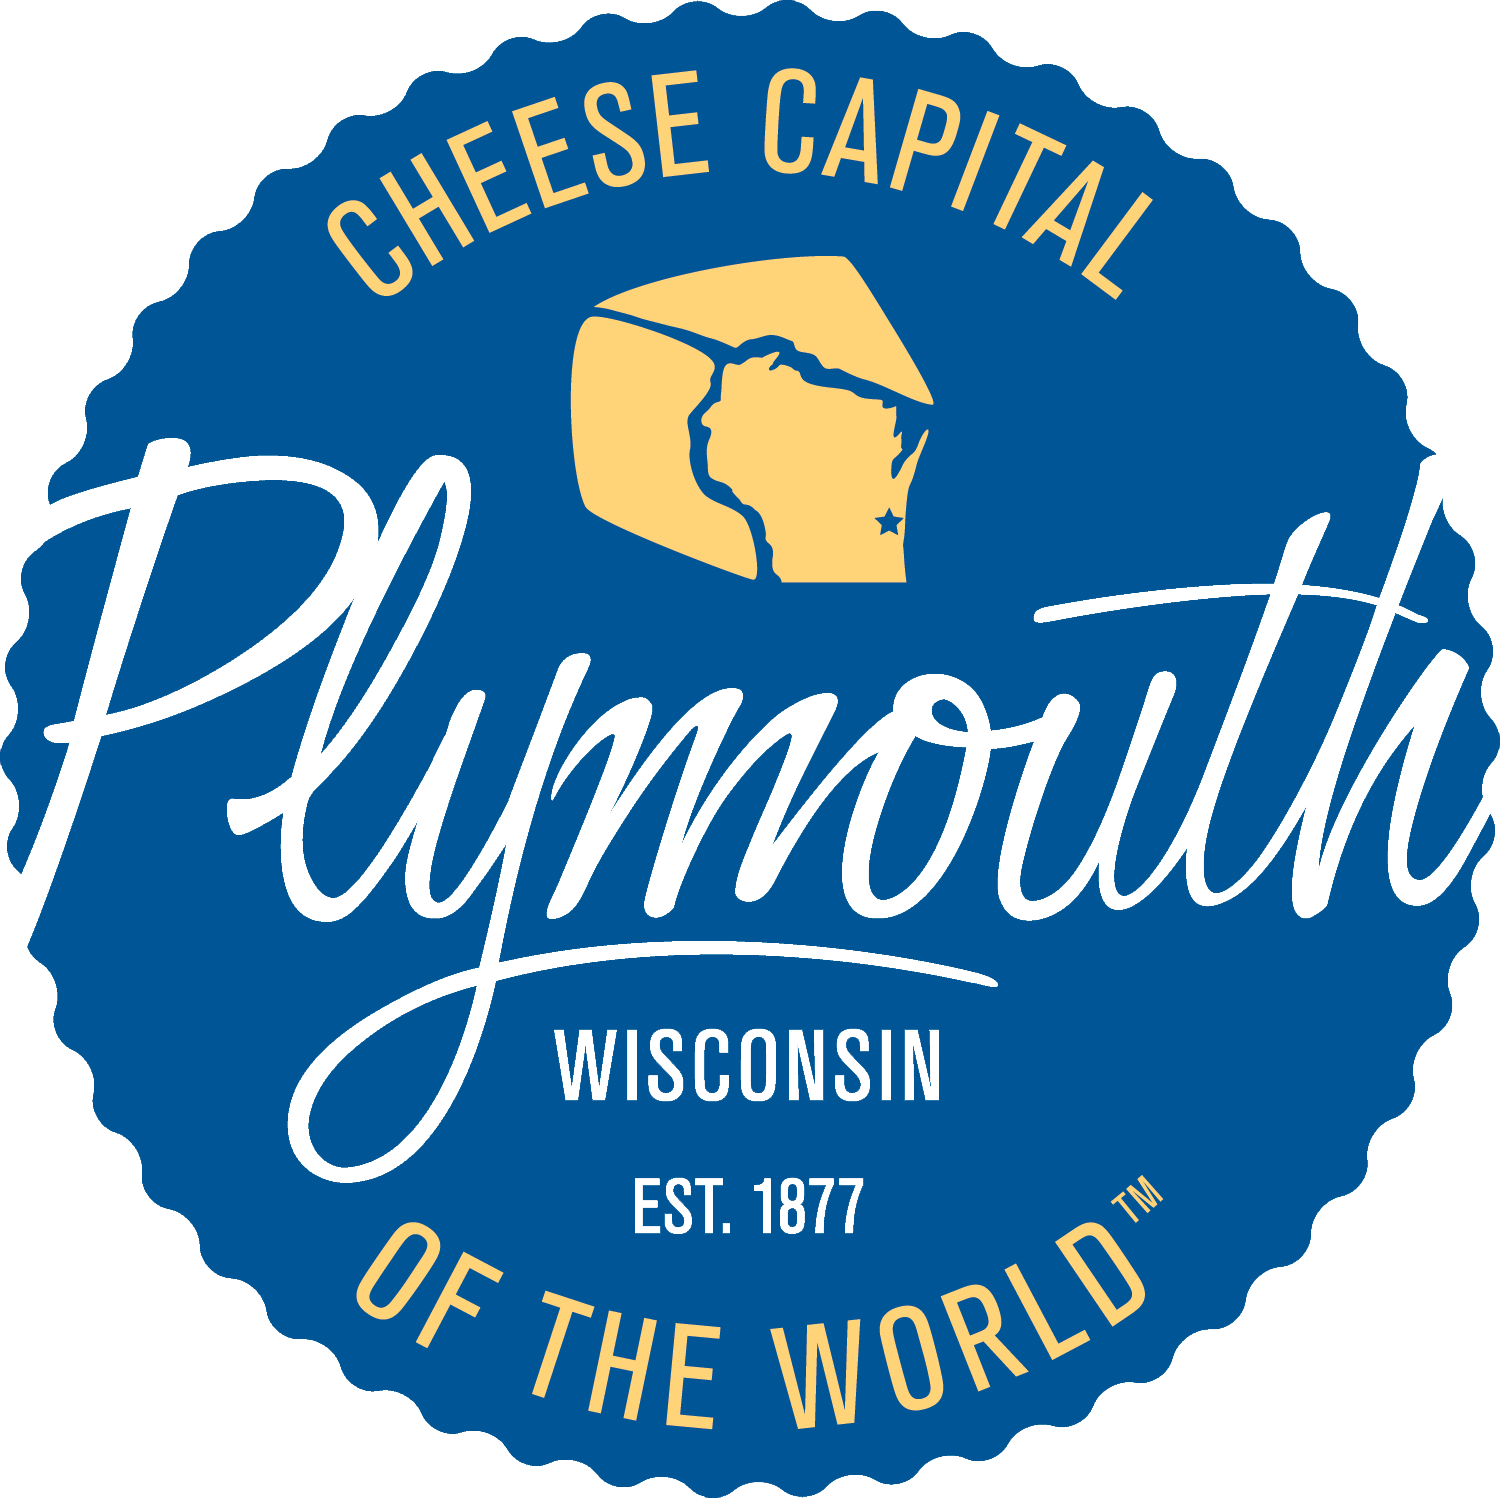 Cheese Capital Logo